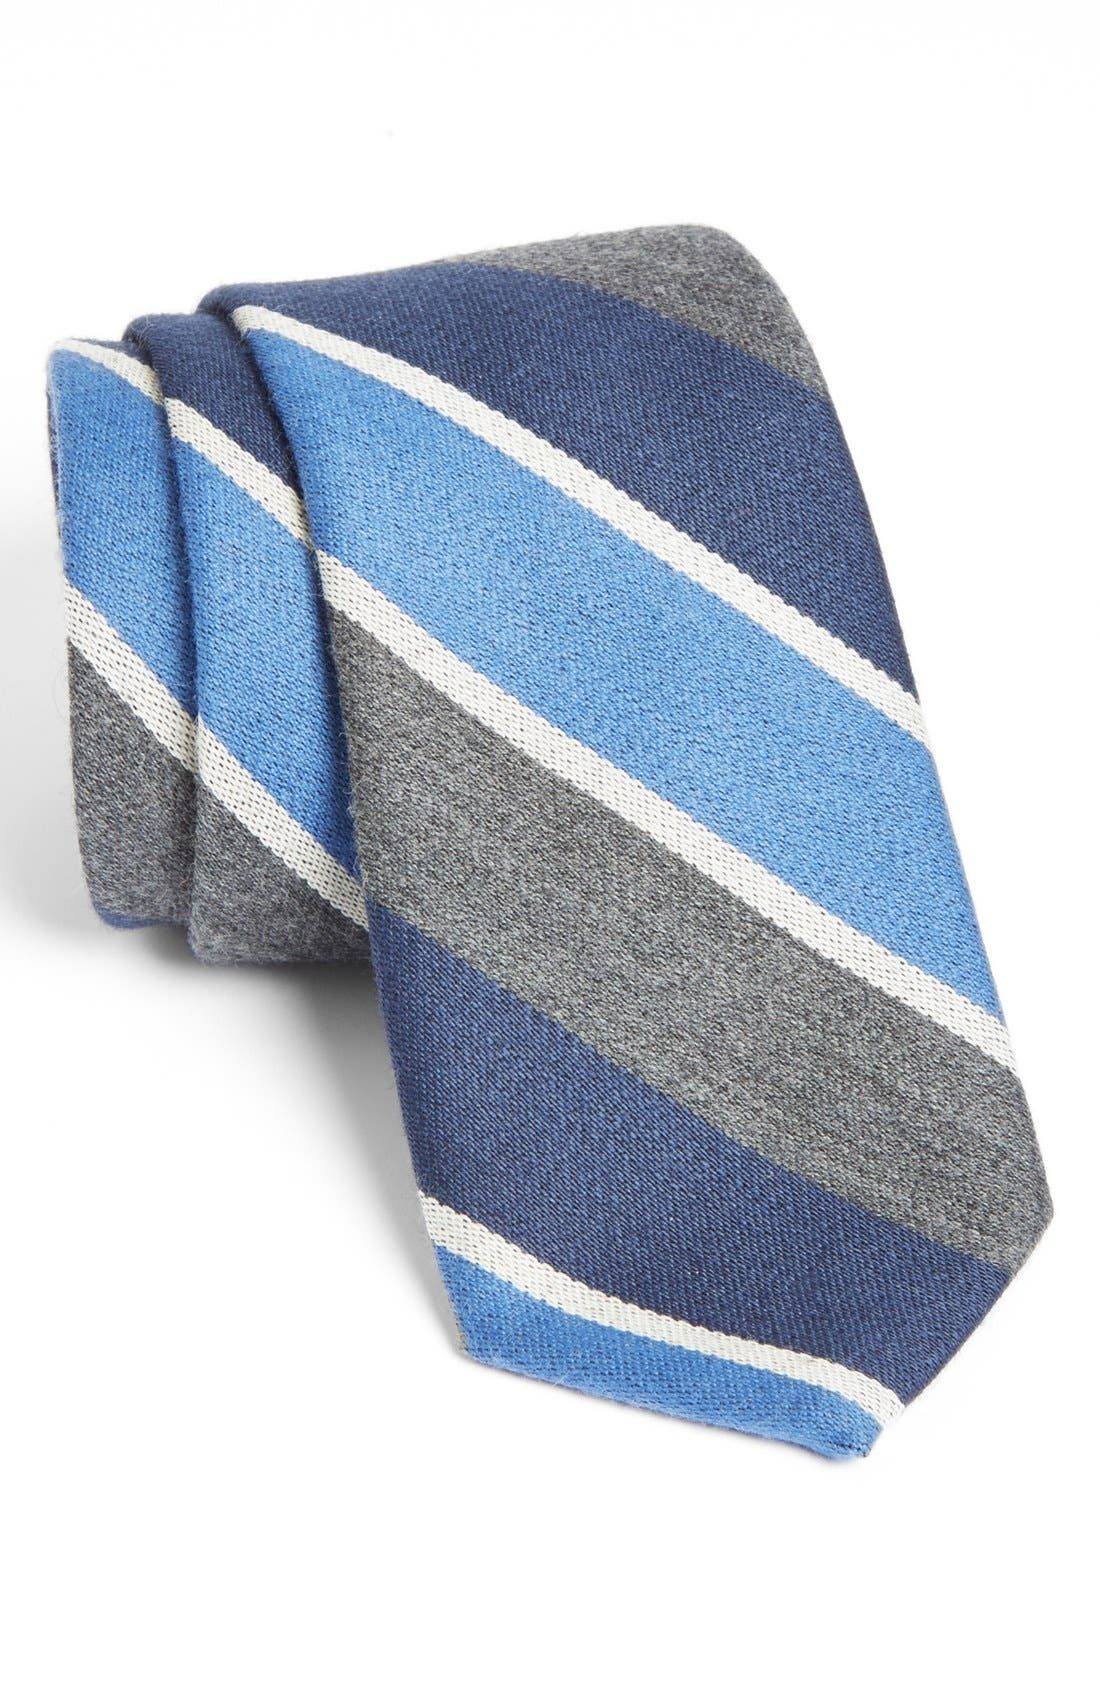 Main Image - Gitman Stripe Woven Wool Tie